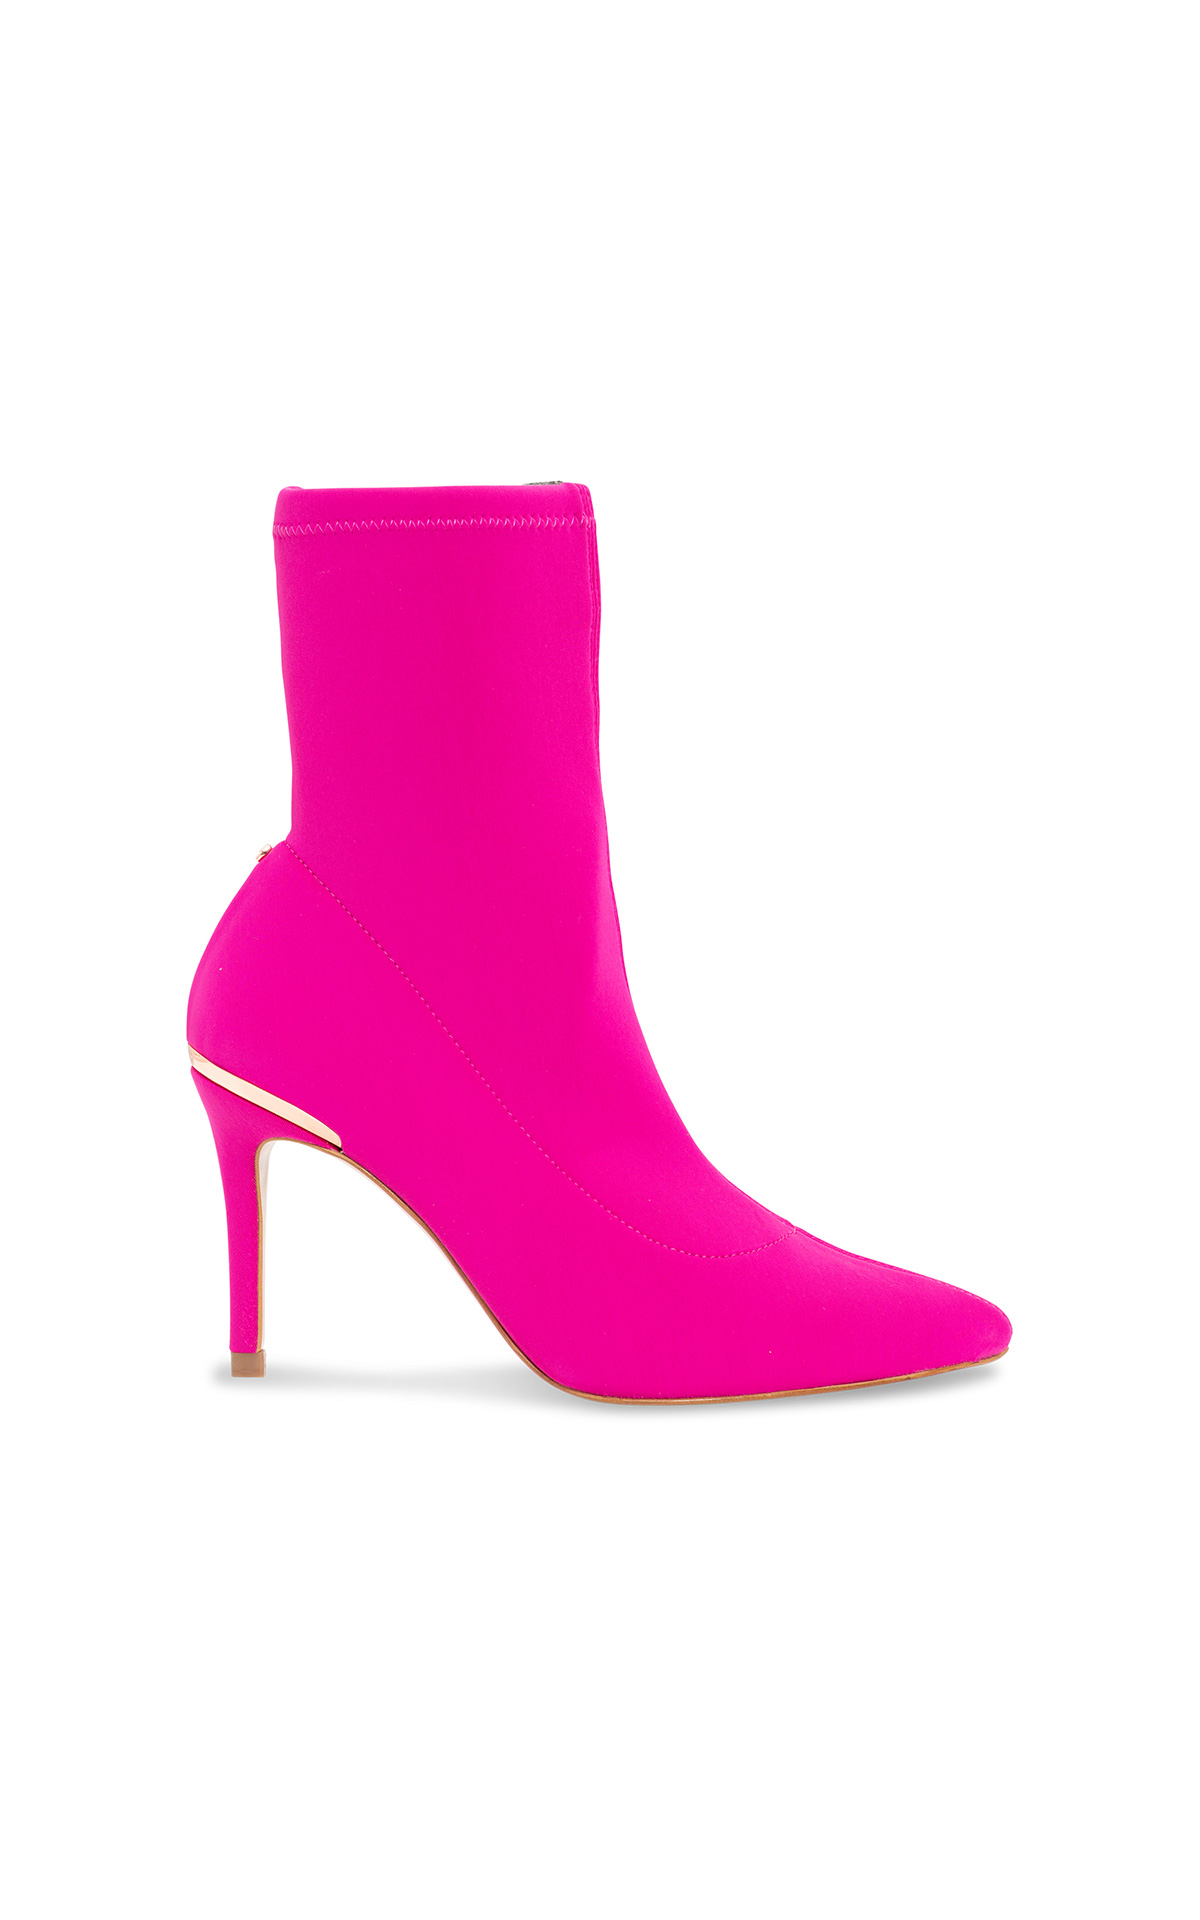 Ted Baker Pink high heeled